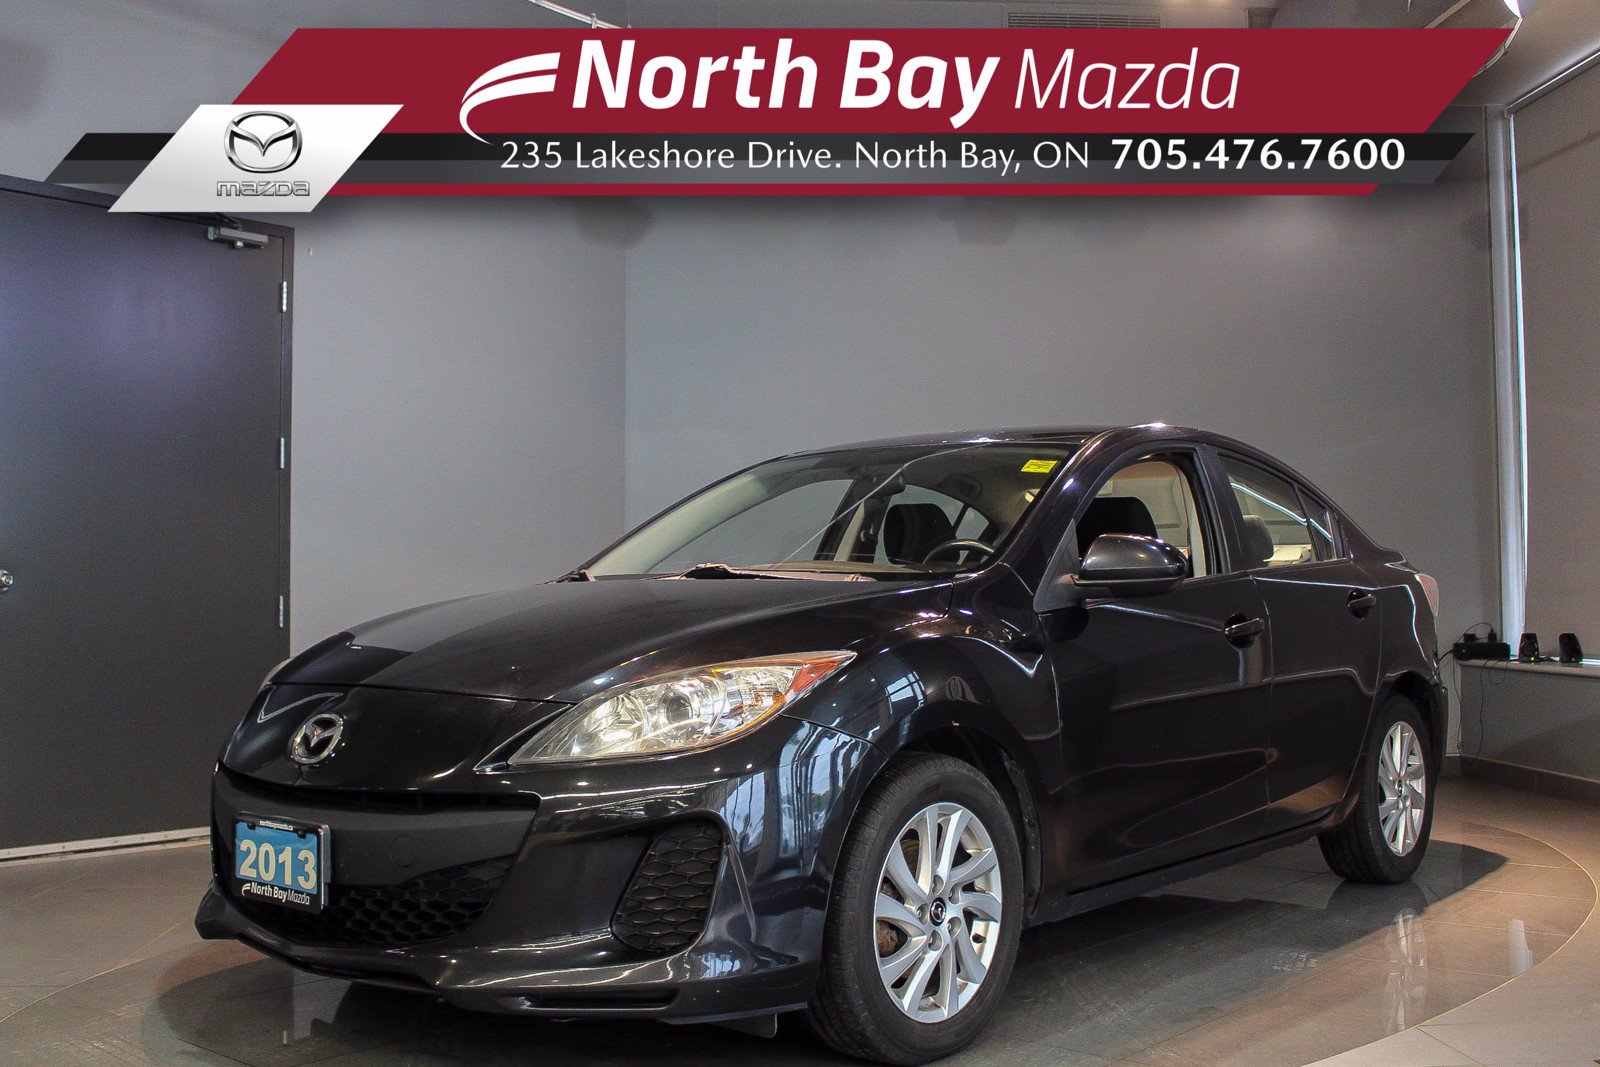 Pre-Owned 2013 Mazda 3 GX - Click Here! Test Drive Appts Available!